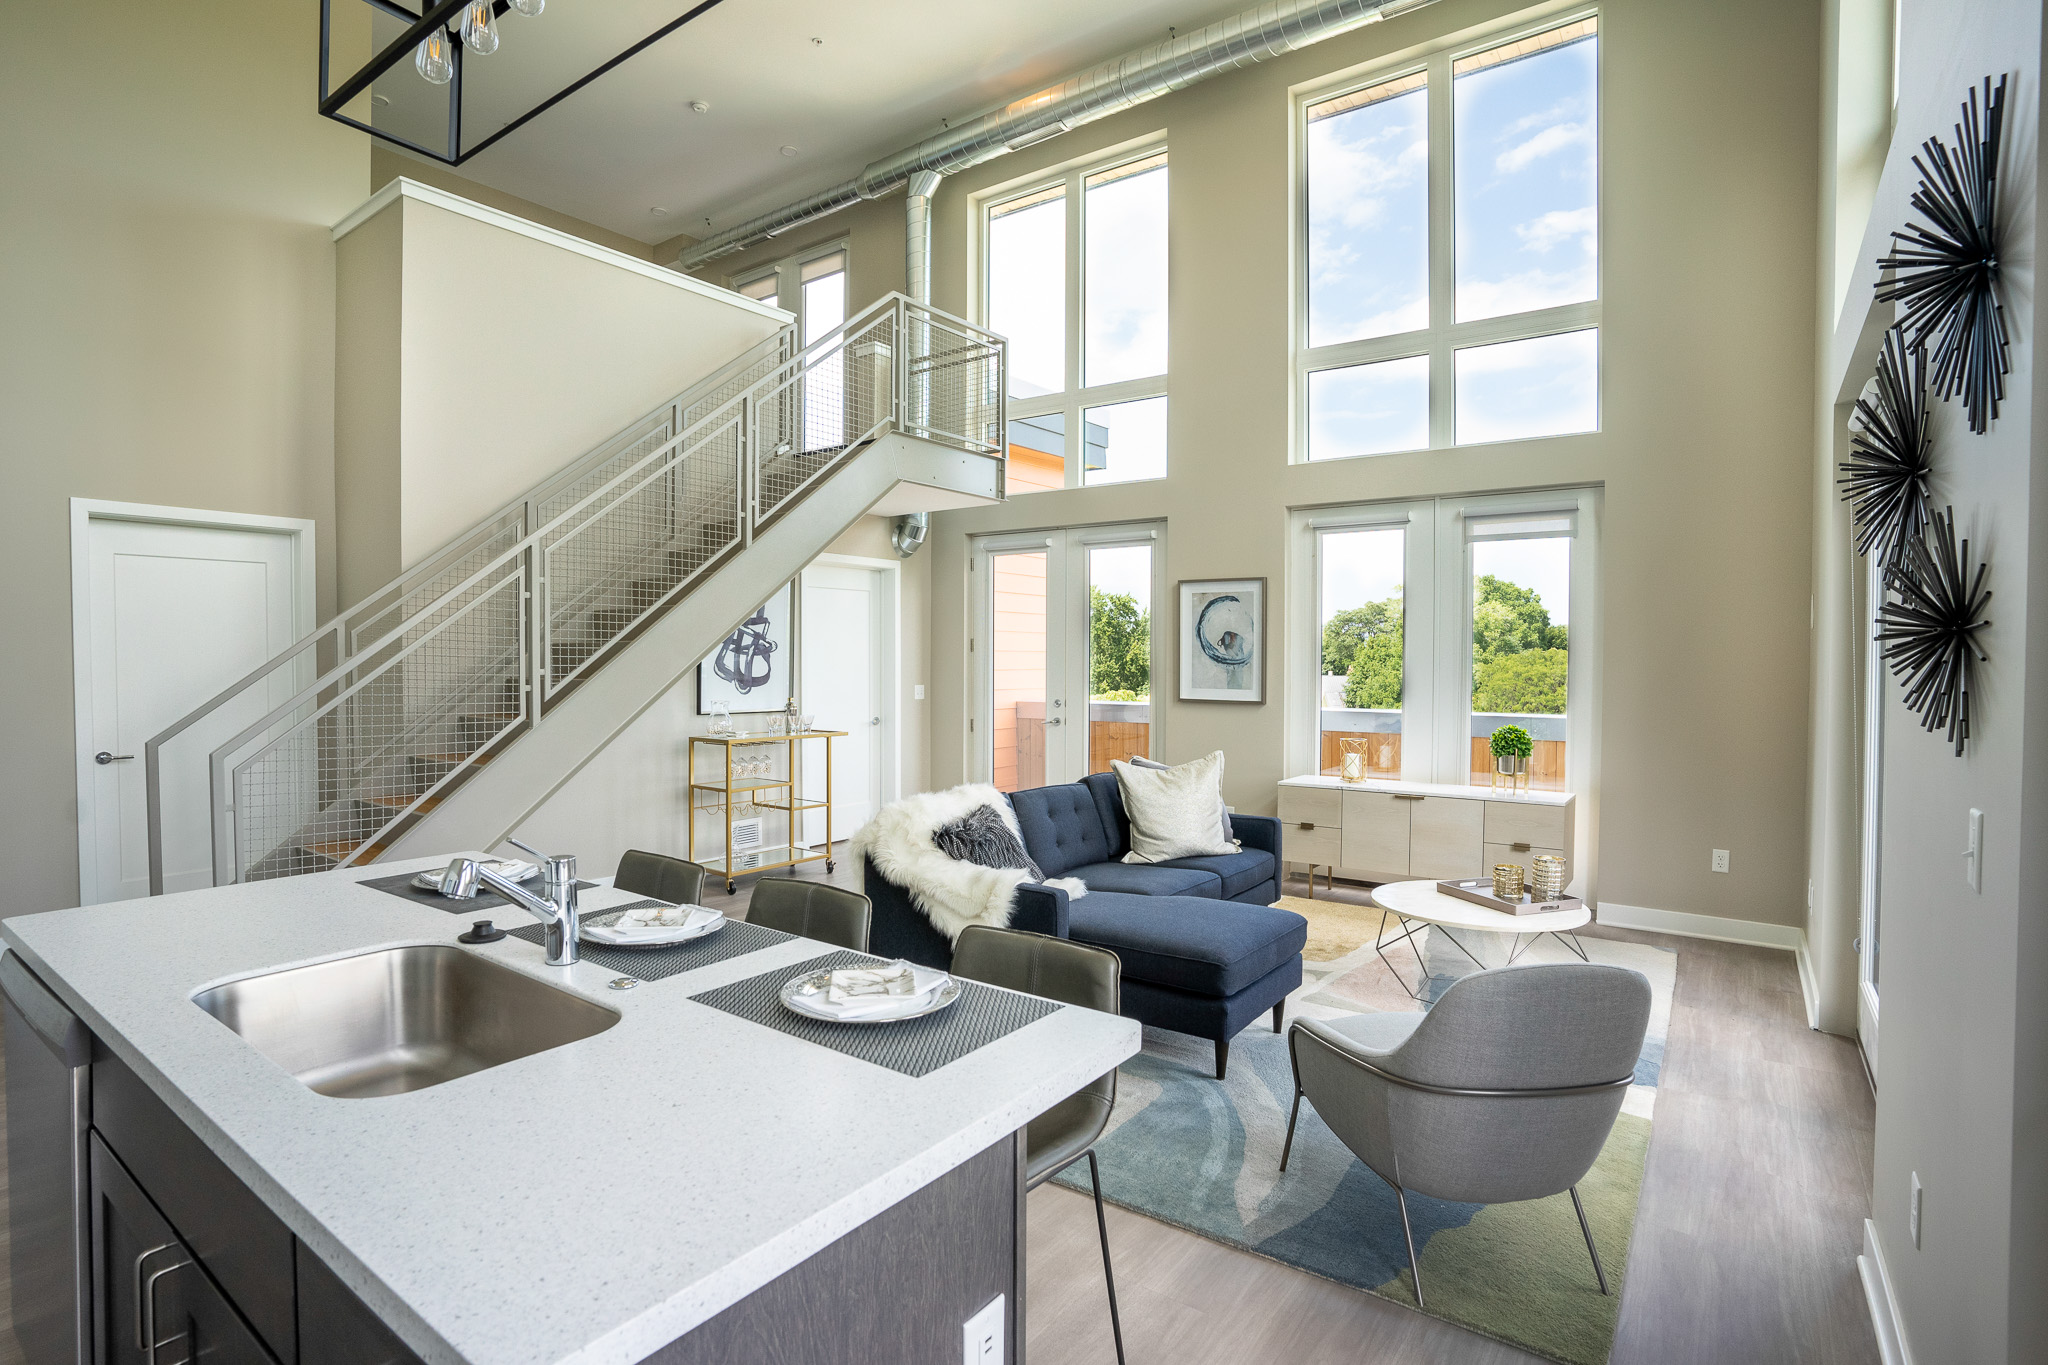 625 S. Goodman Apartments - Floorplan - 2 Bedroom Loft with Terrace